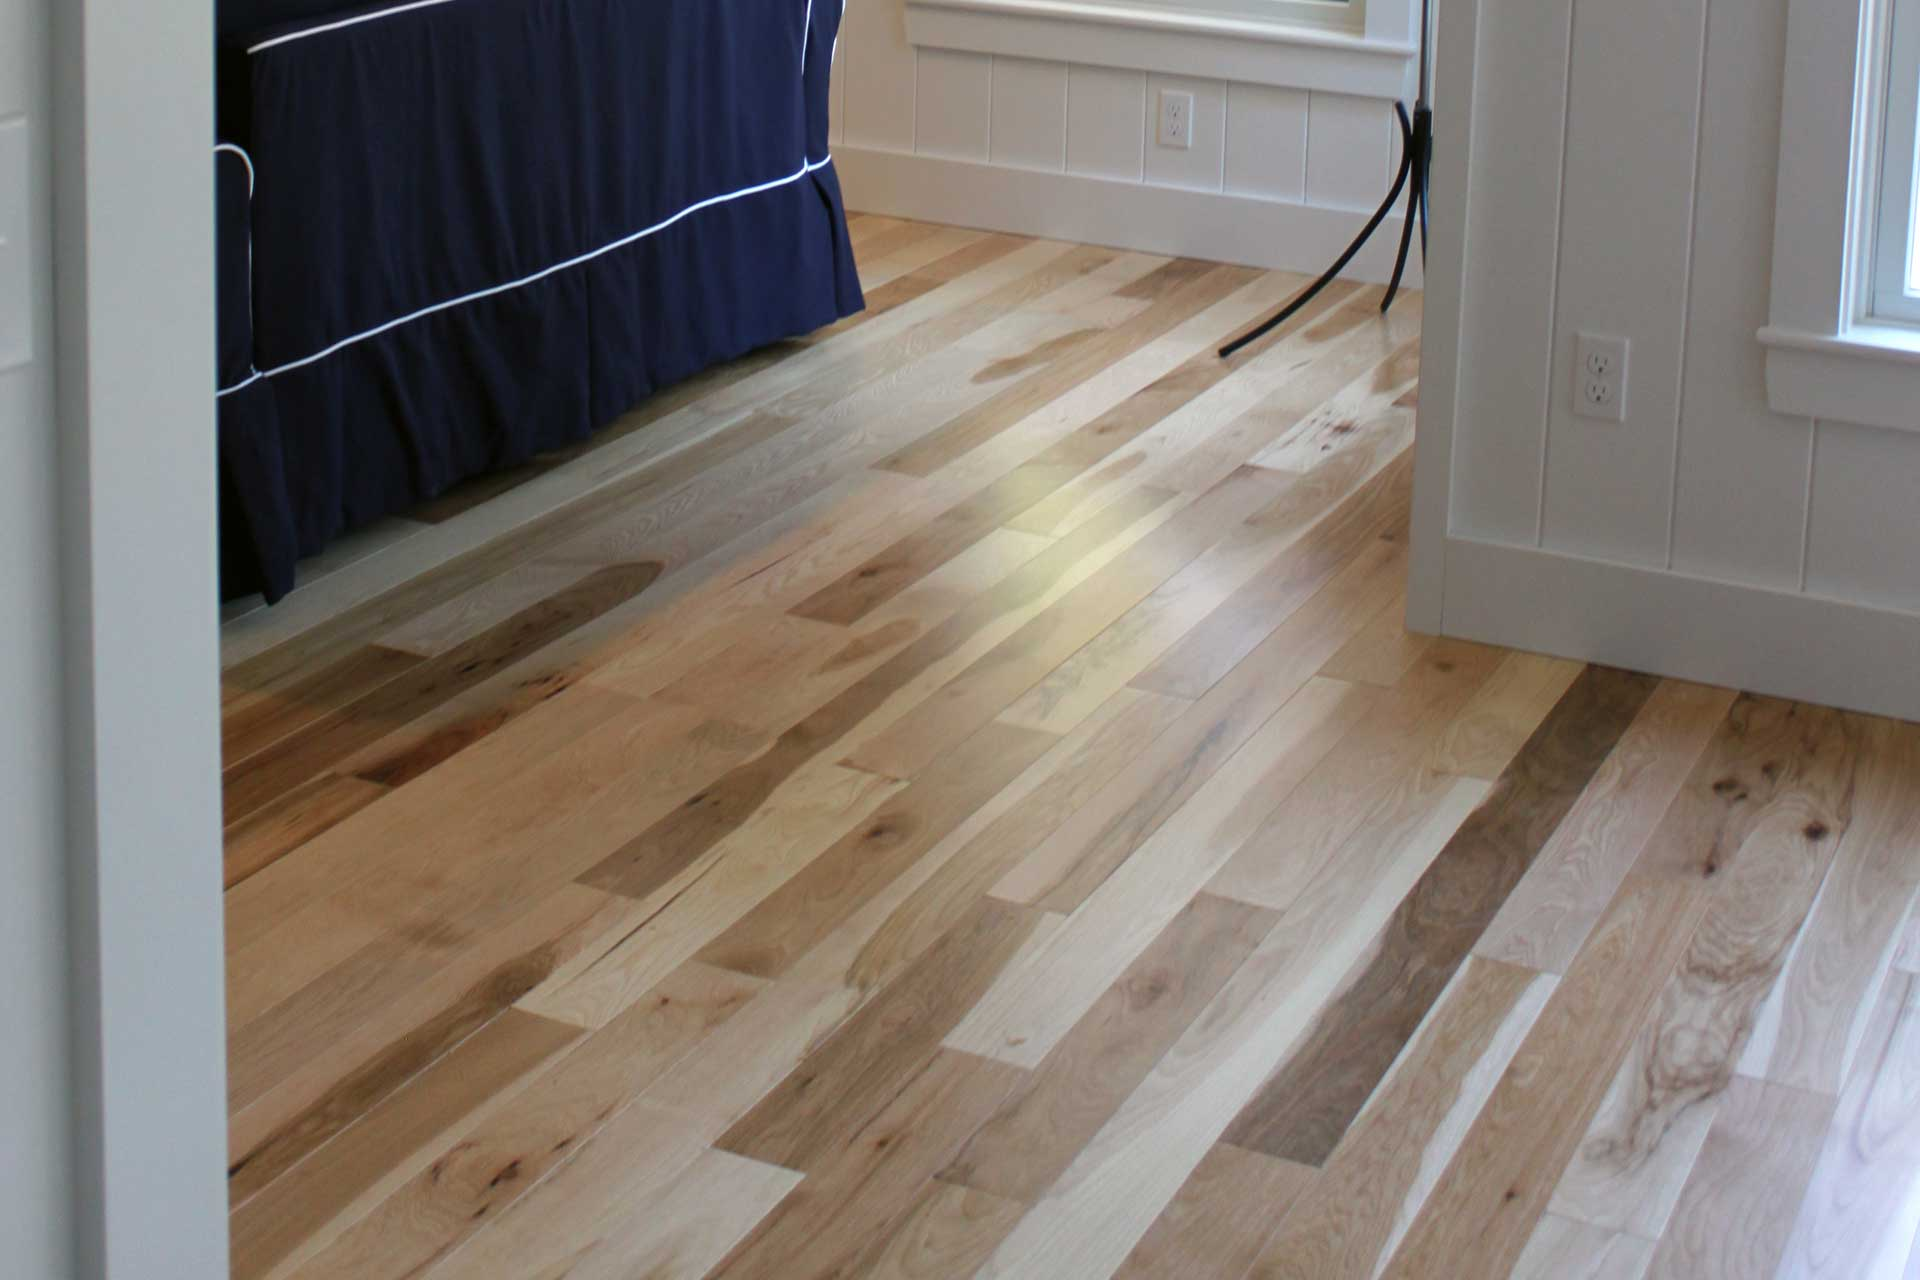 Hardwood-Floors-Hickory-floors-4-Massachusetts